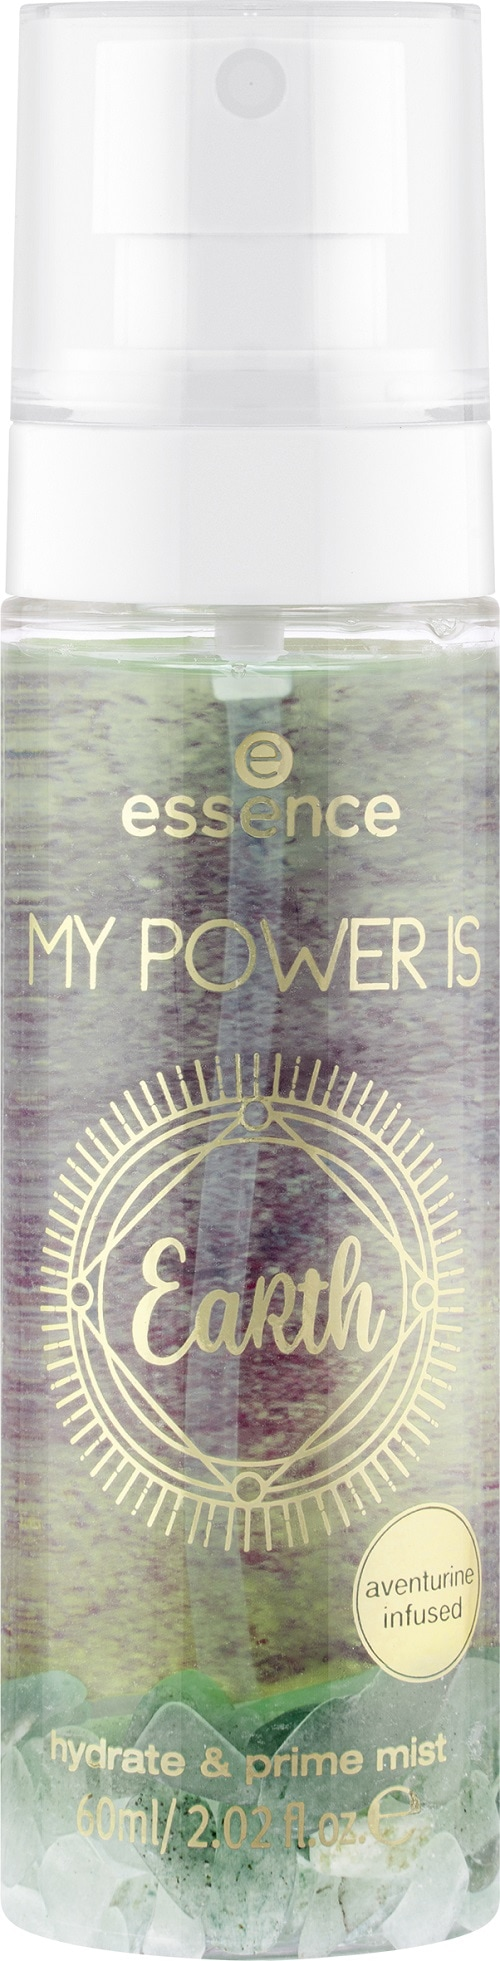 essence MY POWER IS EaRth hydrate & prime mist 02